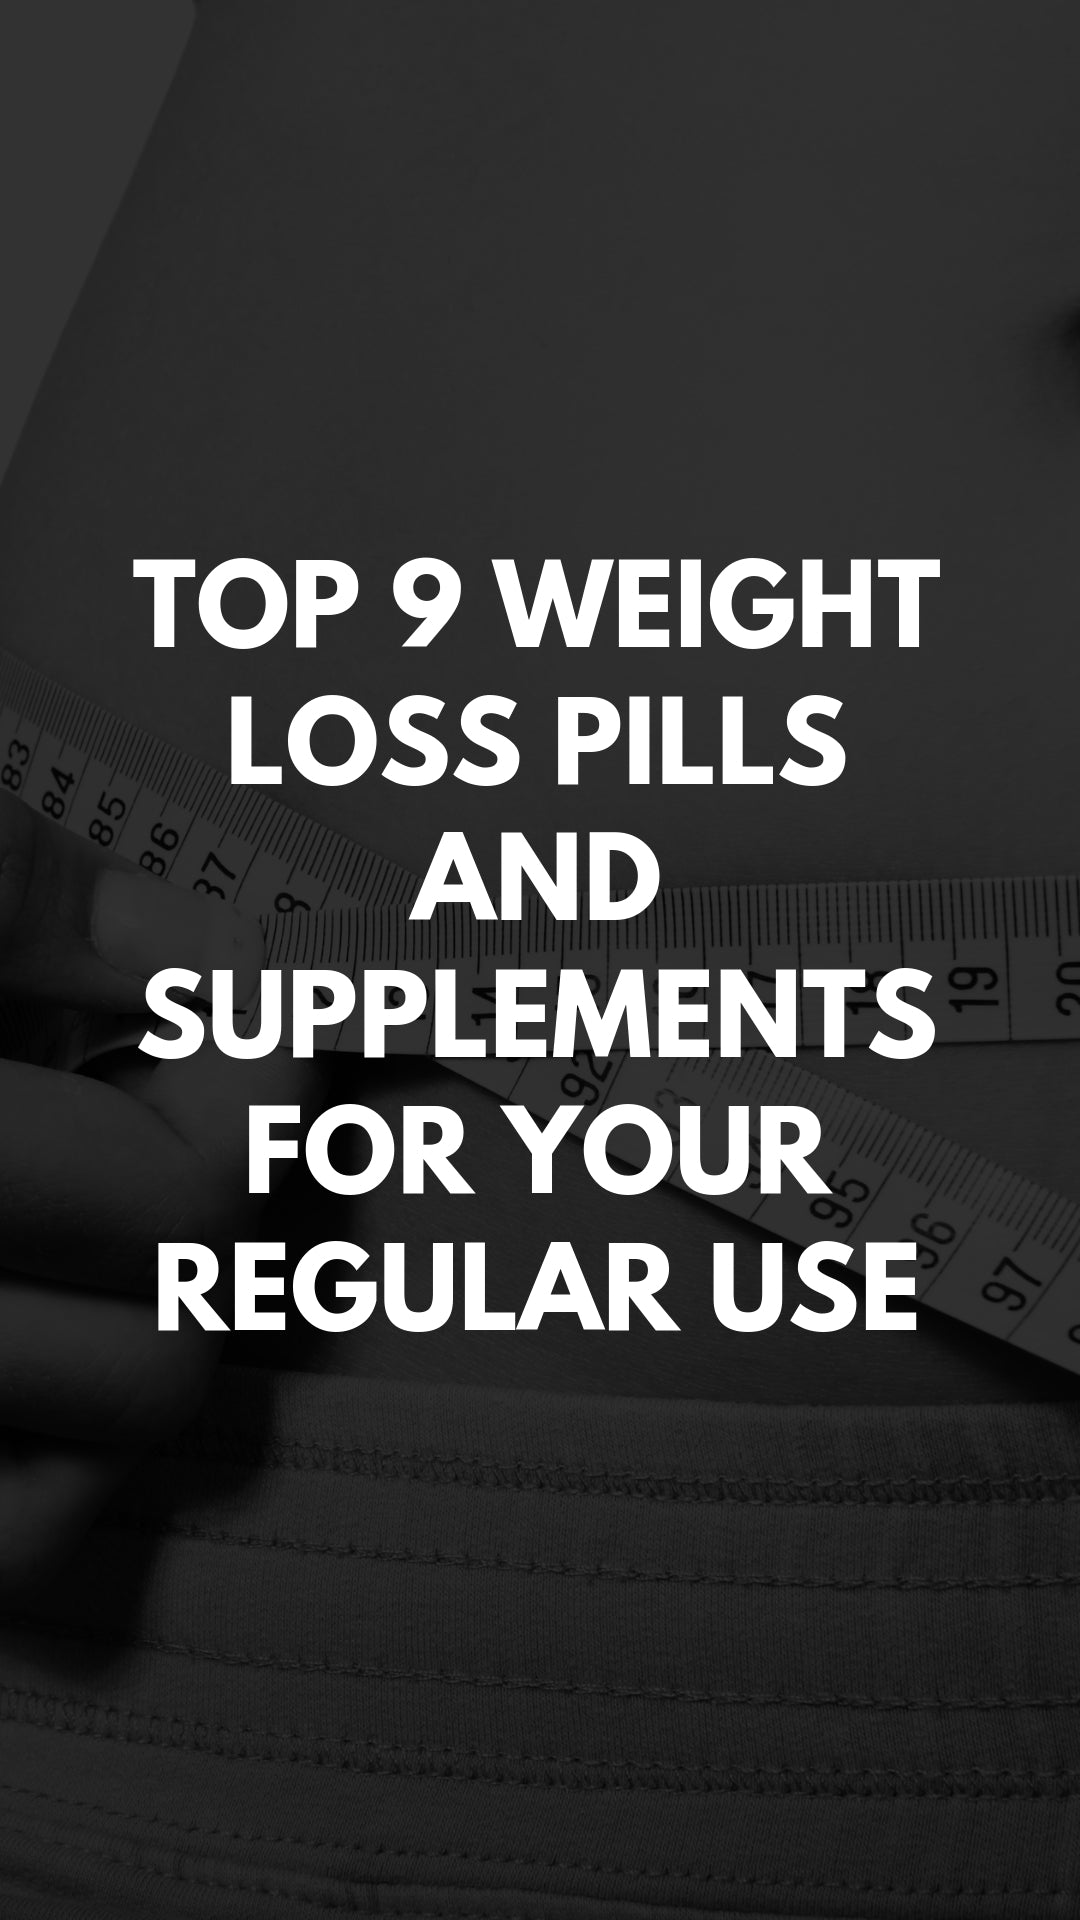 Top 9 Weight Loss Pills and Supplements for Your Regular Use